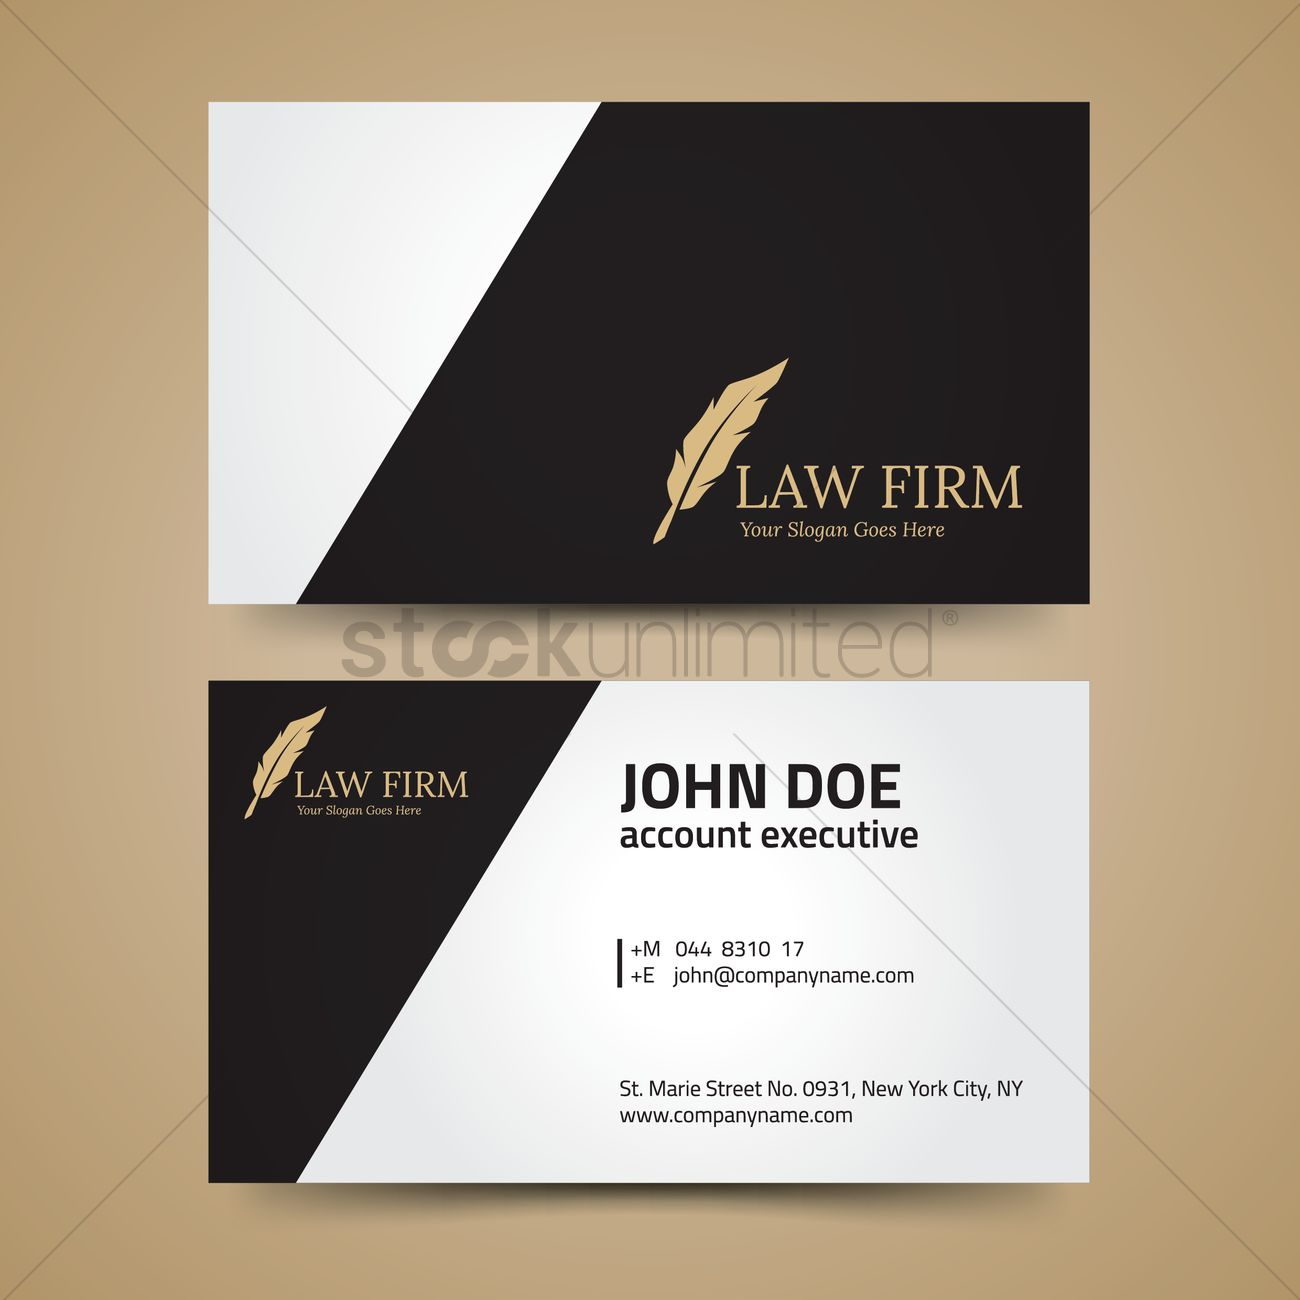 Law firm business card layout vector image 1992561 stockunlimited law firm business card layout vector graphic colourmoves